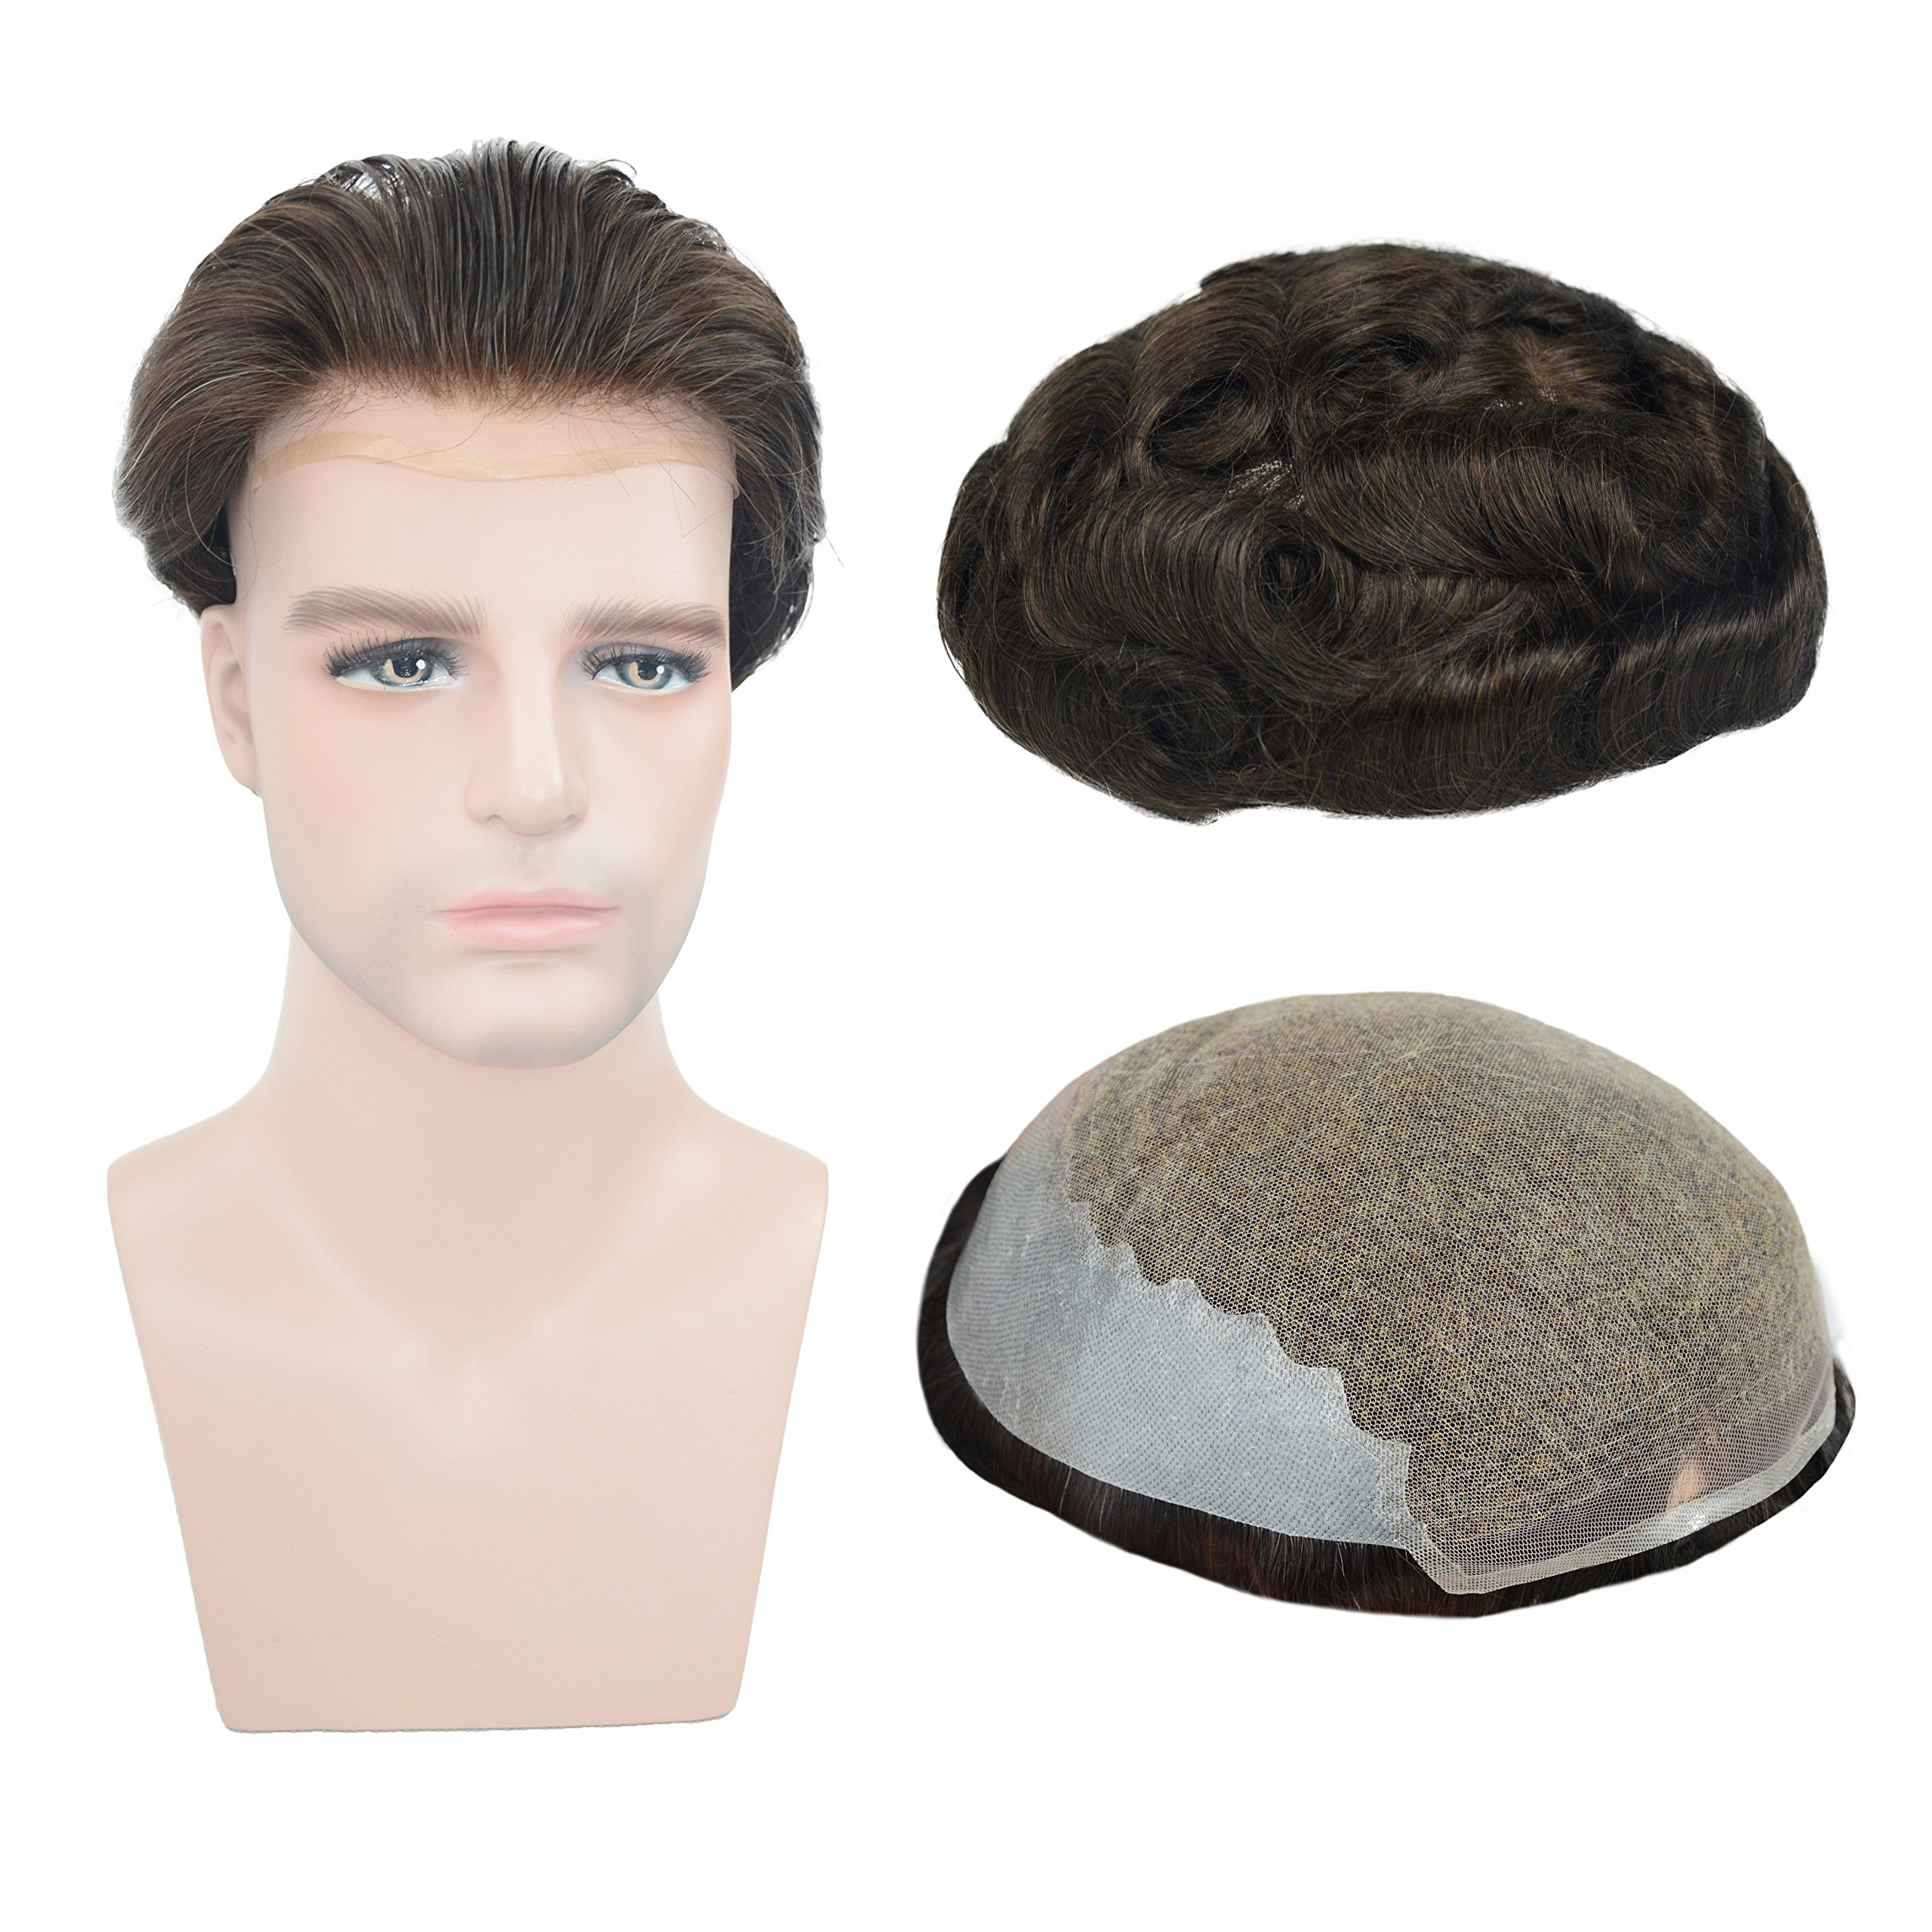 European Virgin Human Hair Toupee For Men, Veer 8x10inch Soft French Lace Cap Base with 2inch Clearly PU in Back Men's Hairpiece Replacement System Natural Wave Dark Brown Color(#2) by Veer